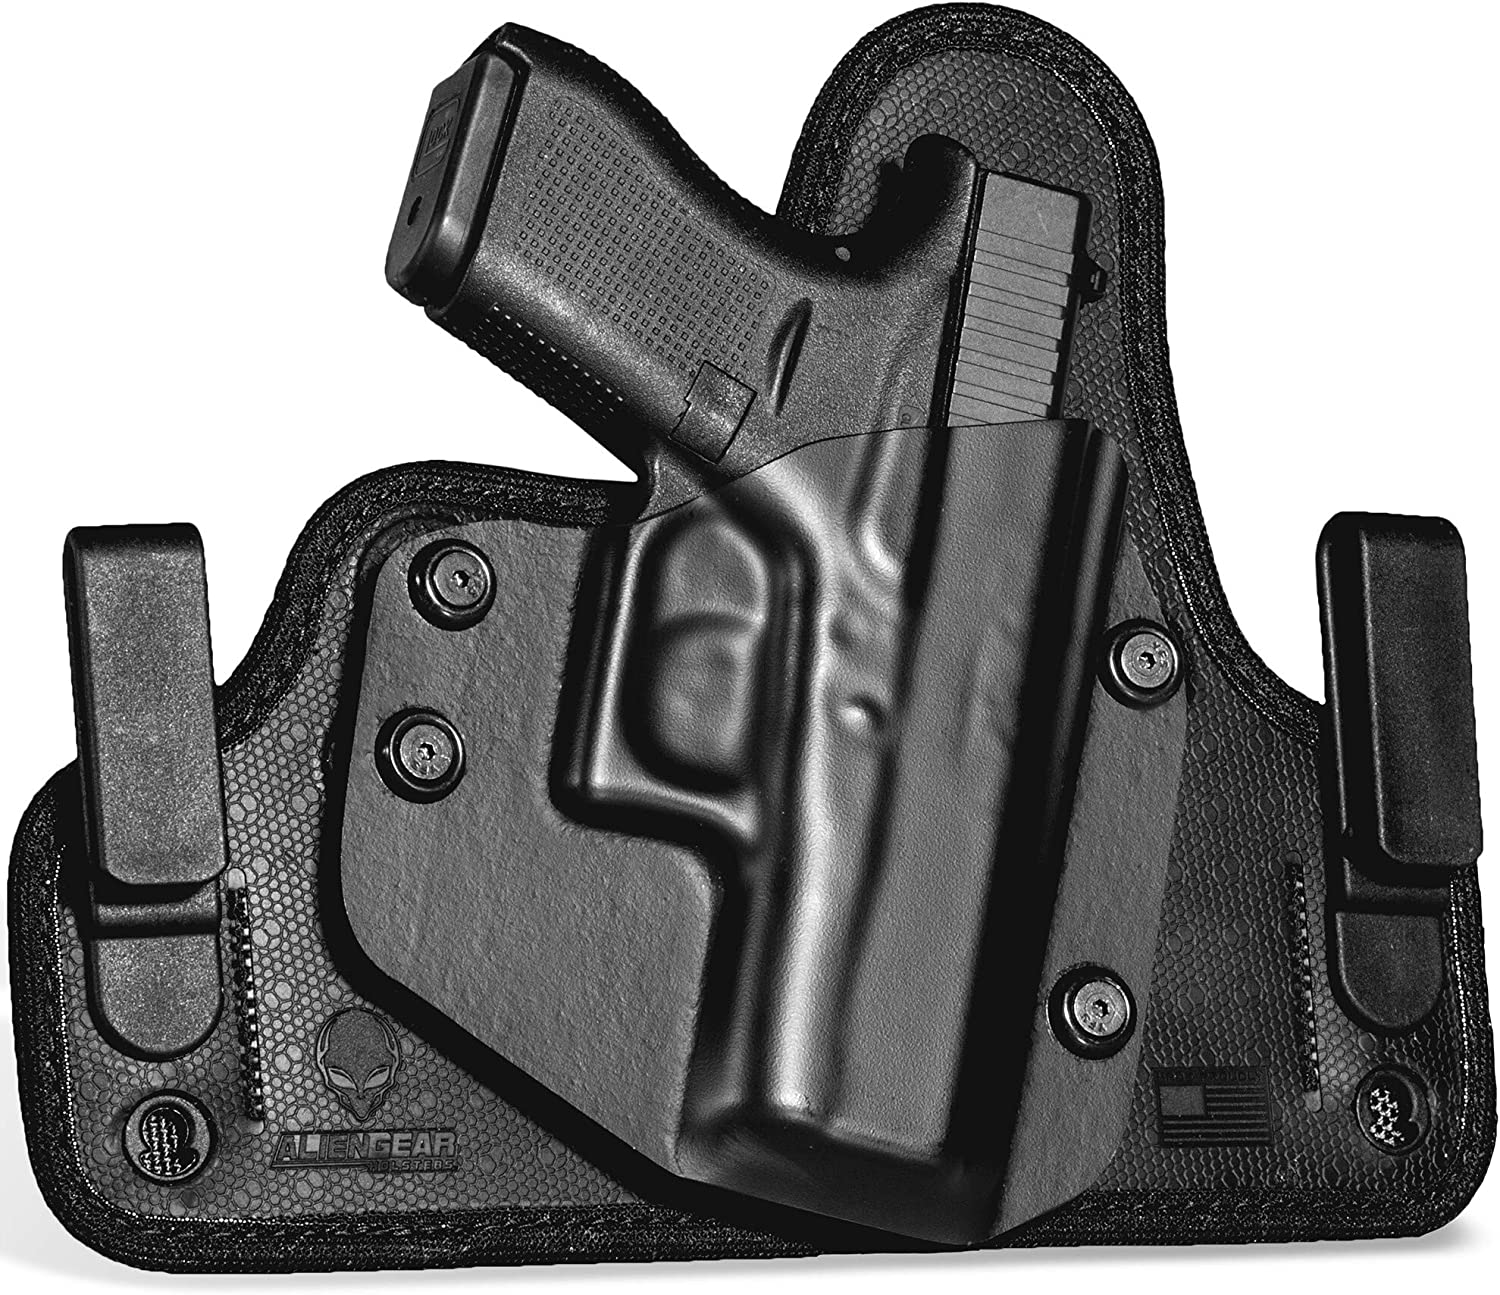 IWB 100/% MADE IN U.S.A. REMINGTON R51 CONCEAL CONCEAL CARRY COMFORT HOLSTER